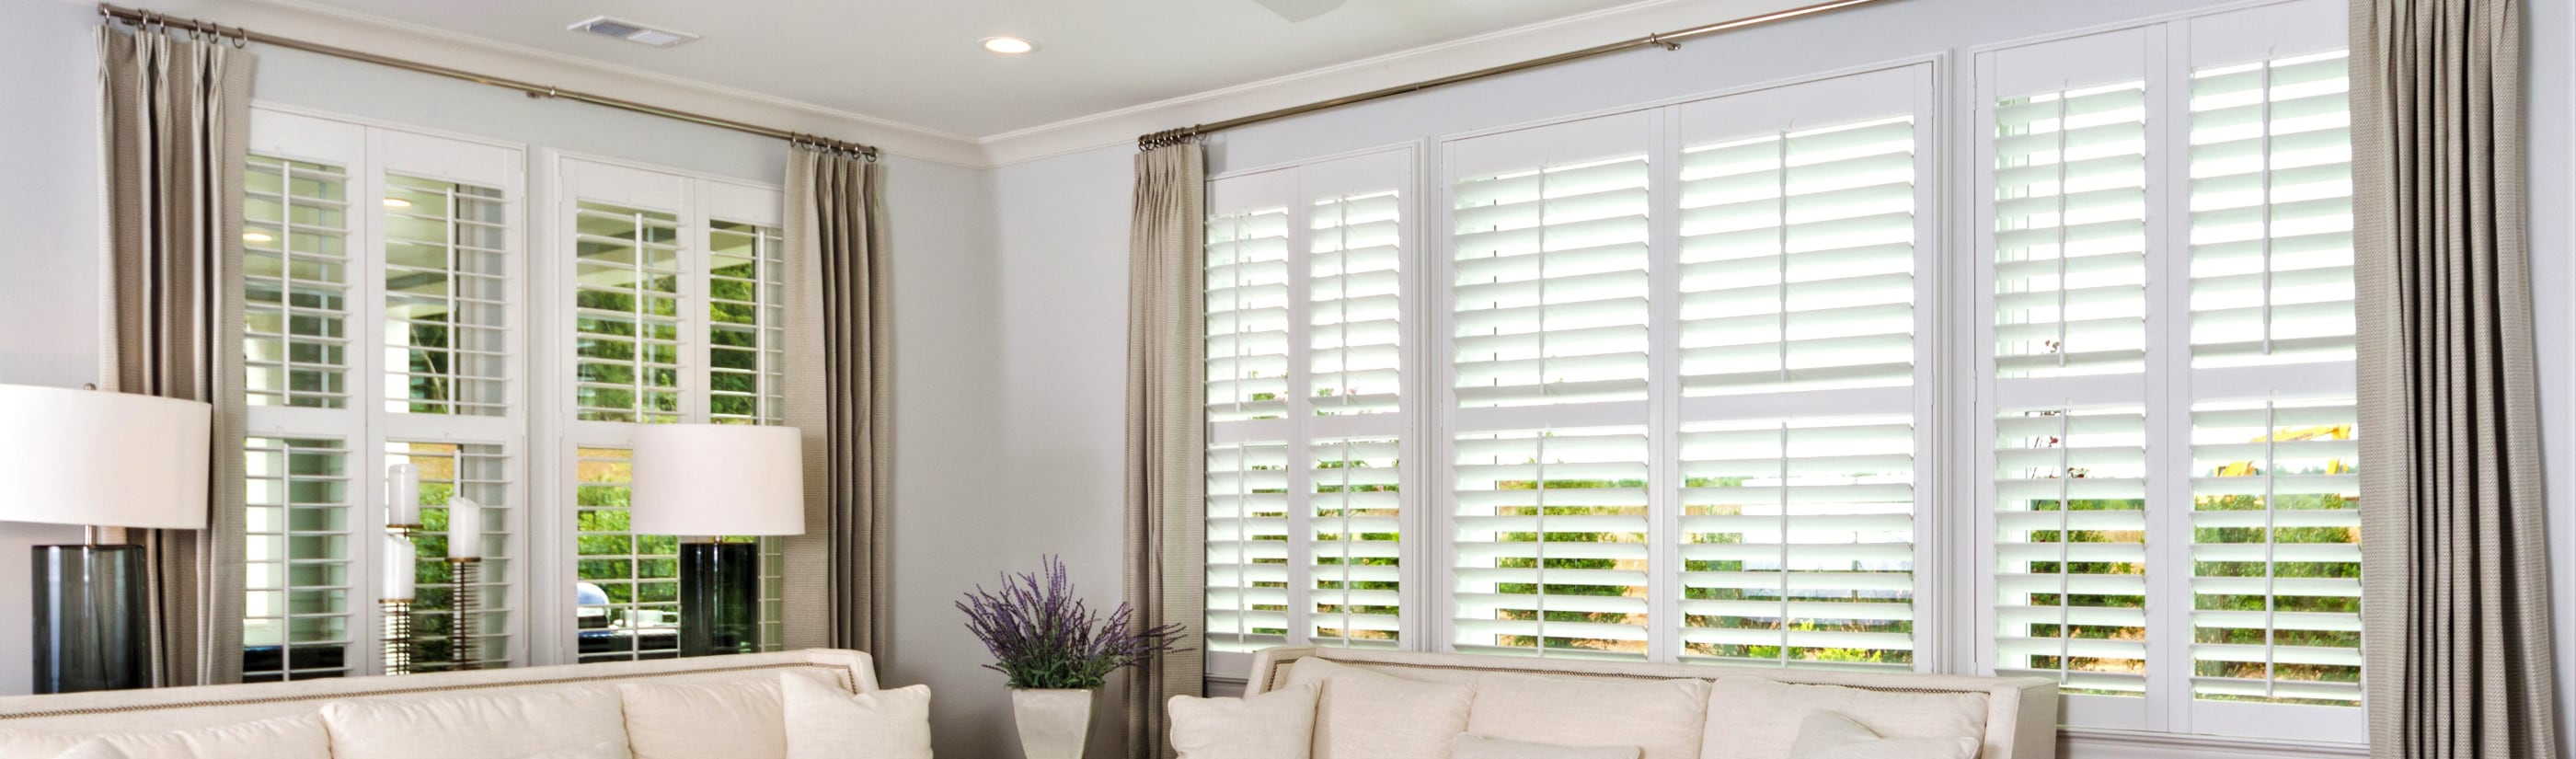 Polywood Shutters Paints In Gainesville